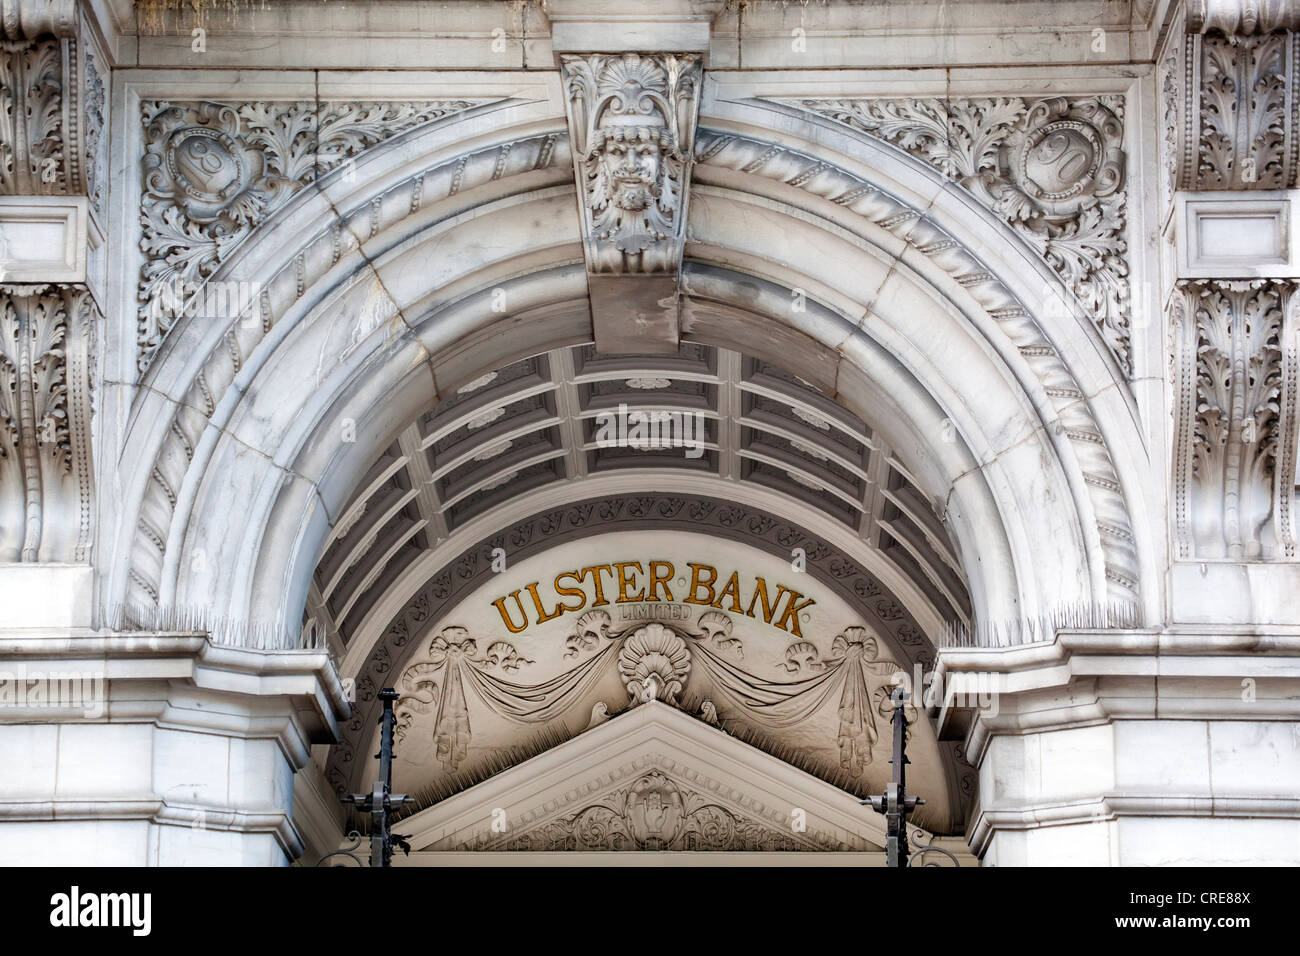 Signage of the Ulster Bank on an old building in the financial district in Dublin, Ireland, Europe - Stock Image